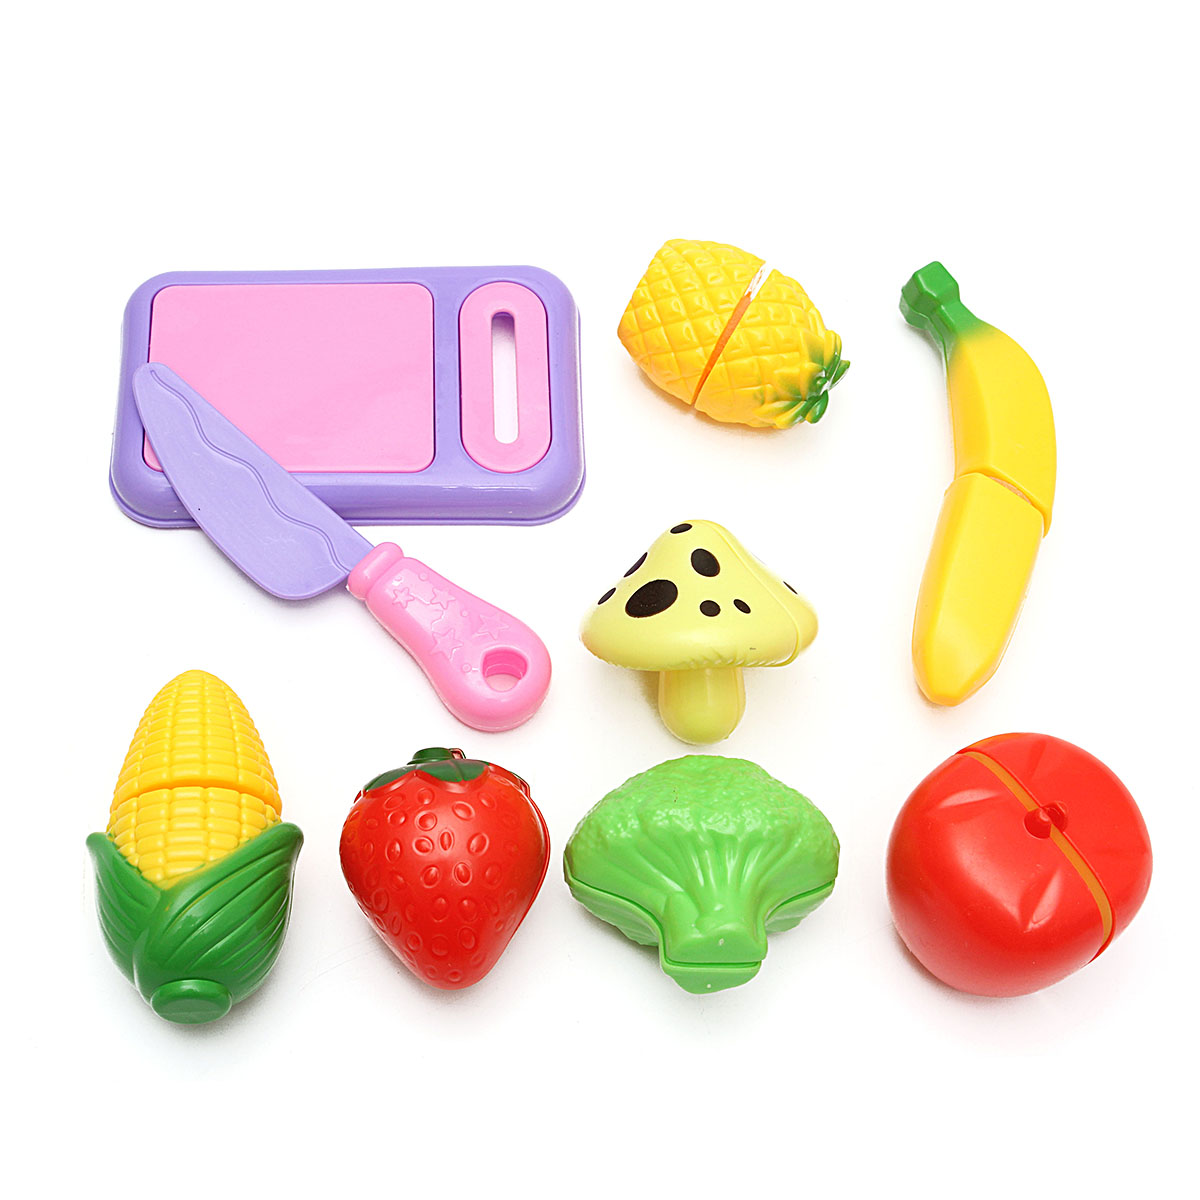 kids kitchen toys ranges sets pretend food play set for cutting fruits and vegetables 9piece